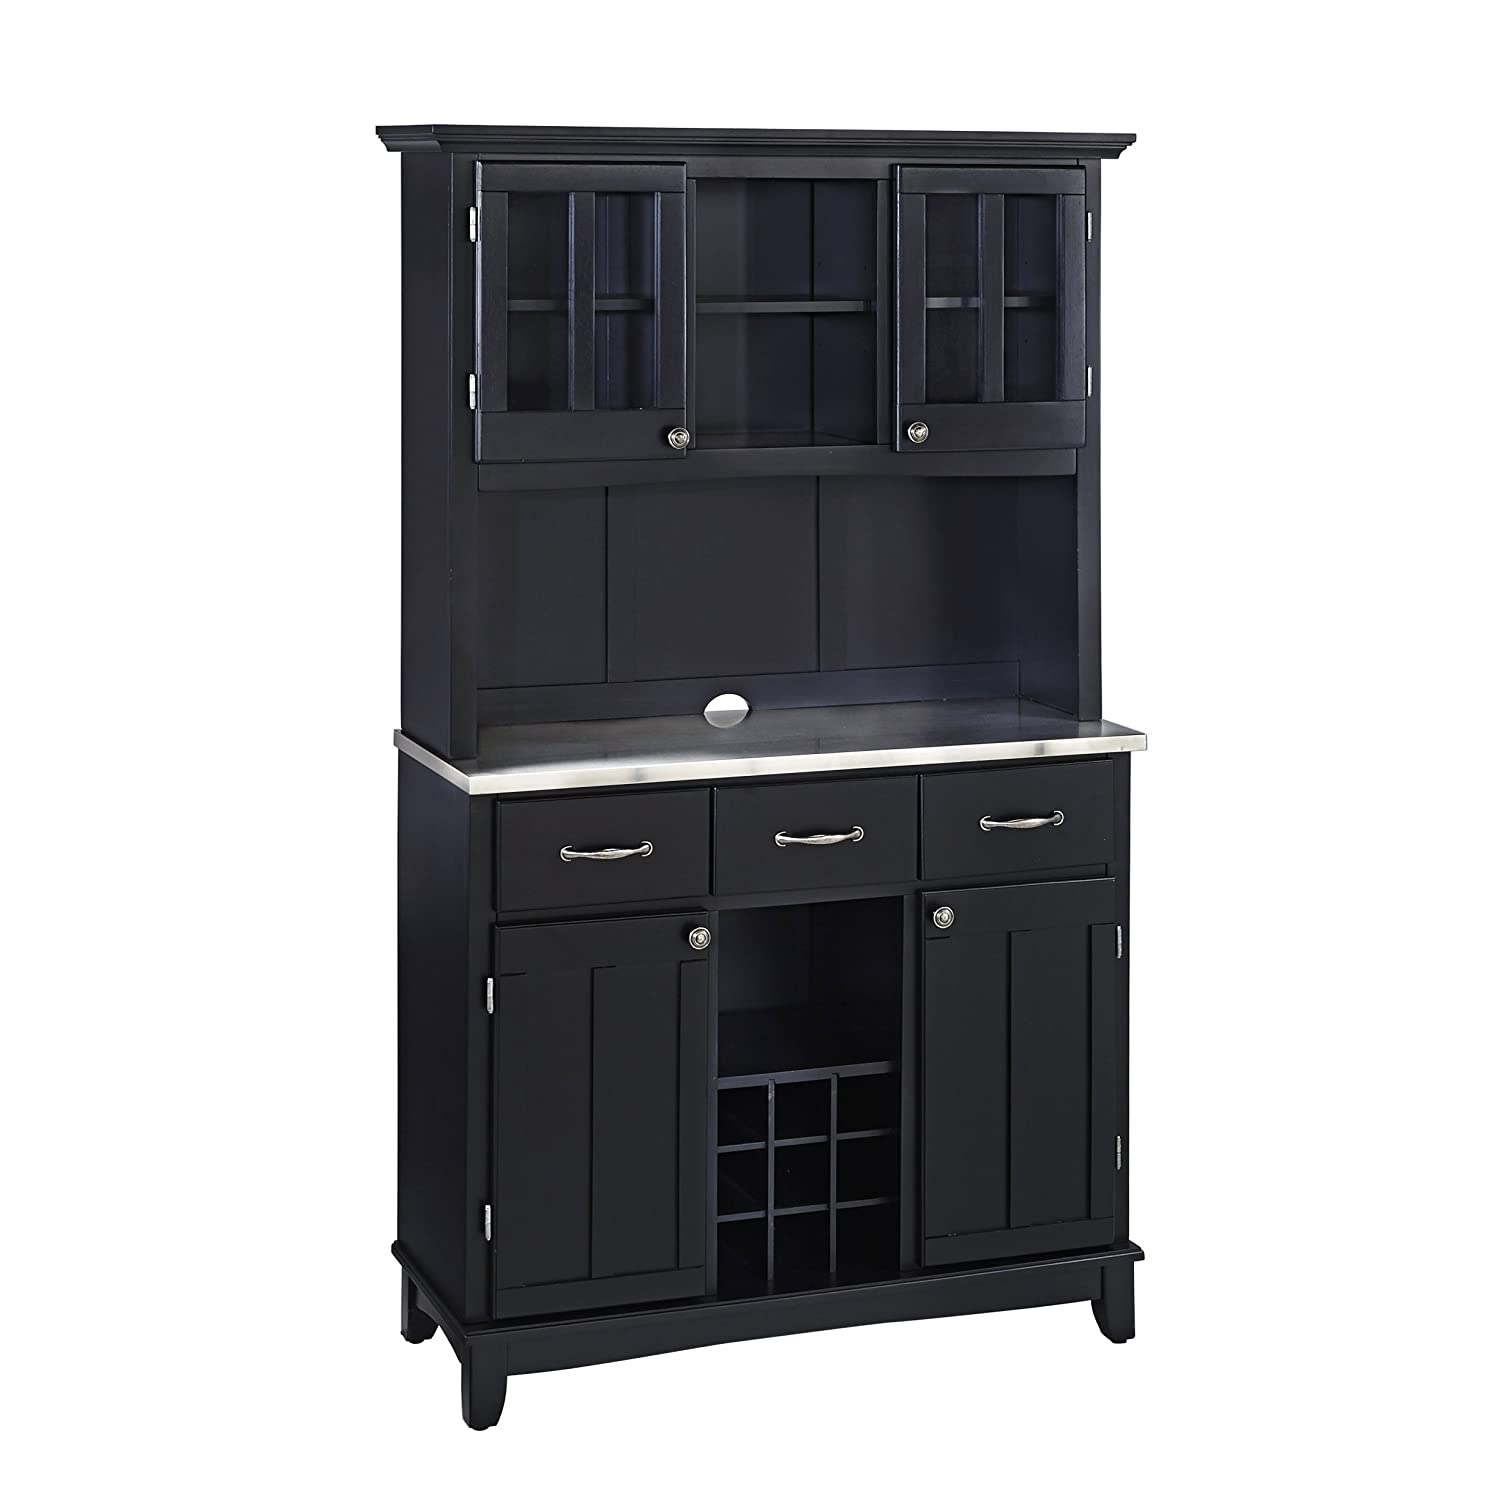 Amazon.com   Home Styles 5100 0043 42 Buffet Of Buffets Stainless Steel Top  Buffet With Hutch, Black Finish, 41 3/4 Inch   Buffets U0026 Sideboards